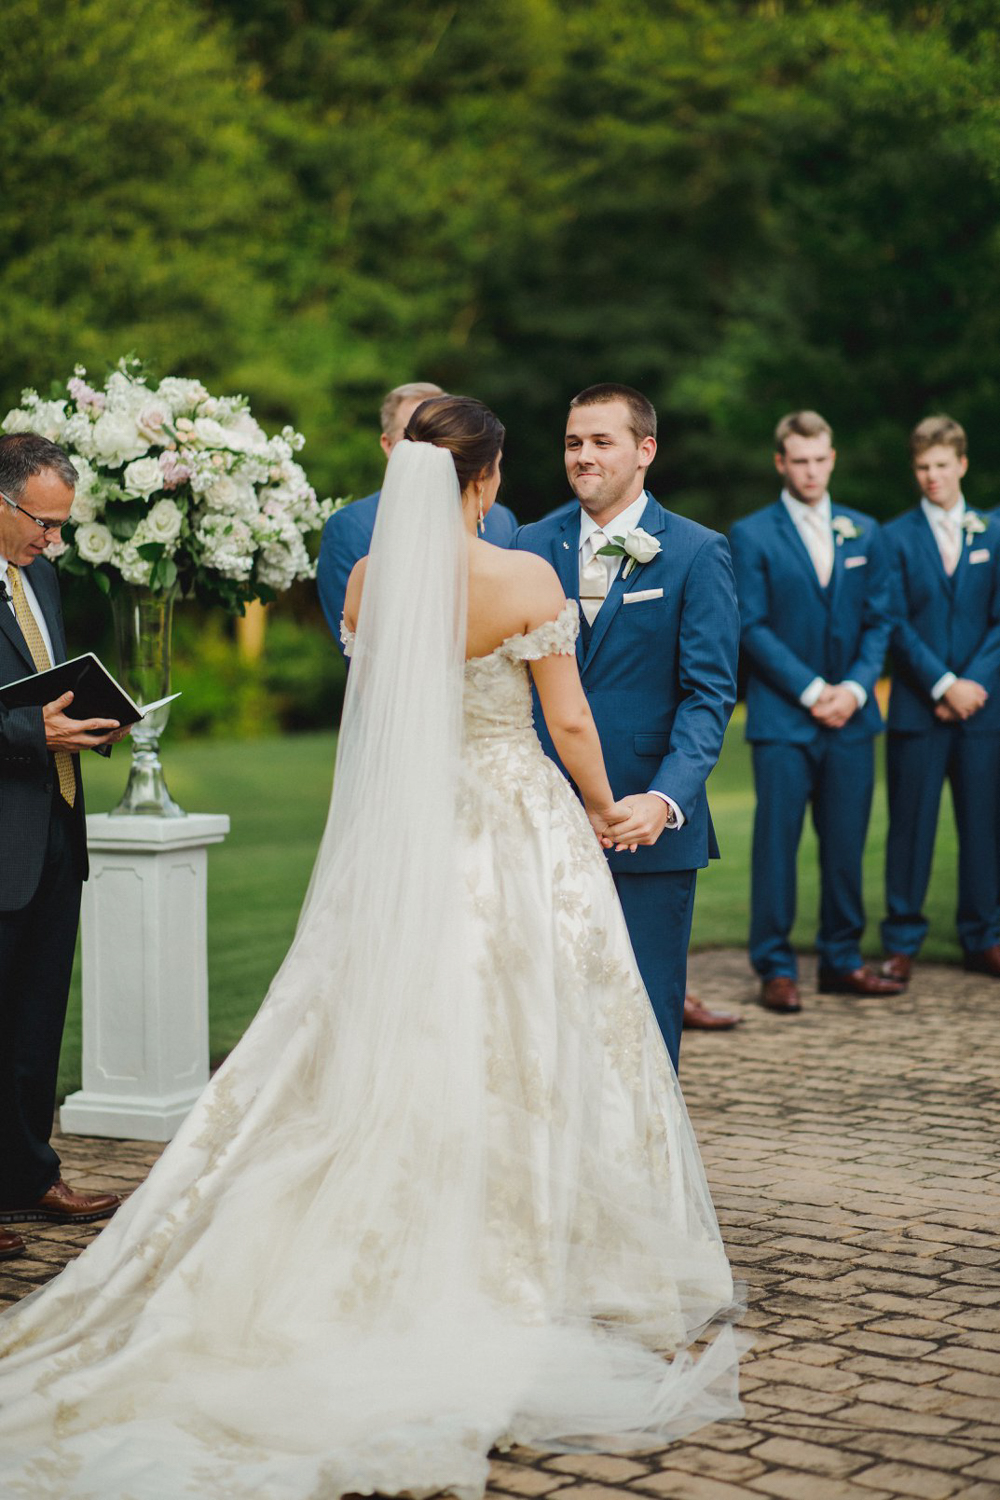 Southern outdoor wedding venue | The Farm at High Shoals